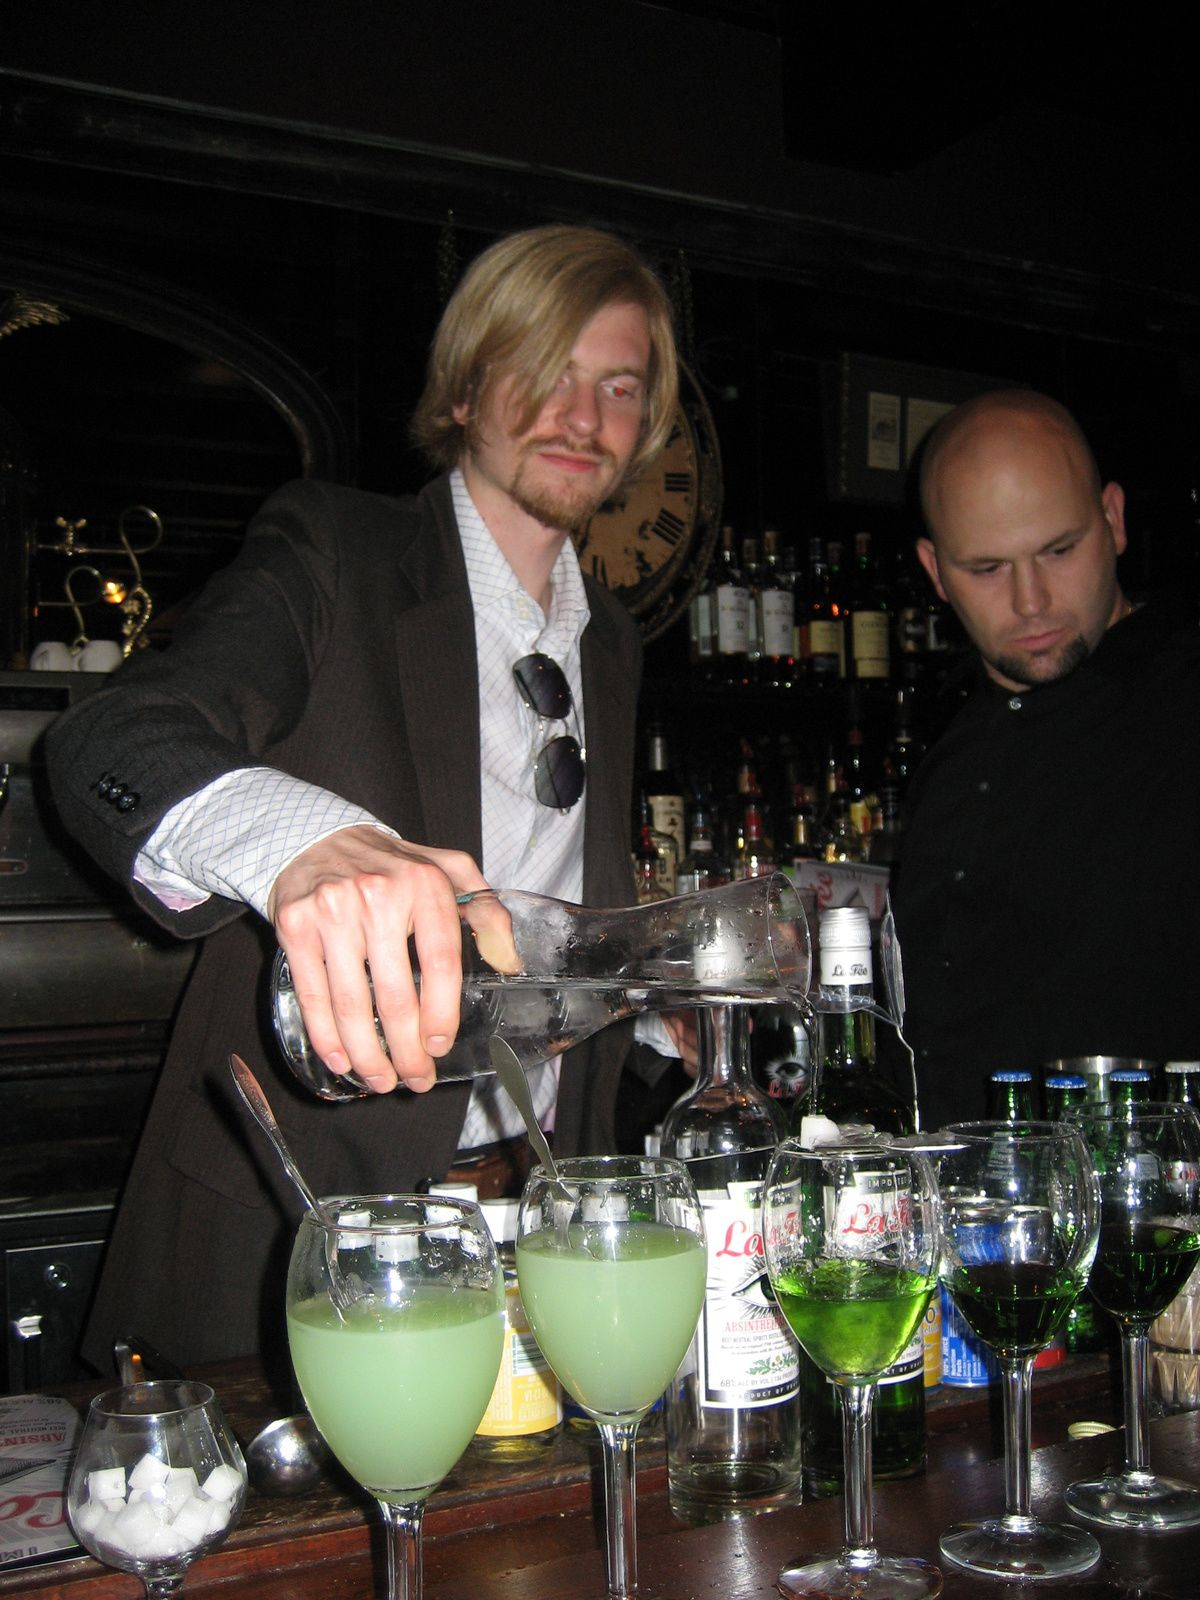 Oscar Dodd, collaborateur de Georges Rowley, servant La Fée au bar de l'Old Absinthe House, juillet 2008.